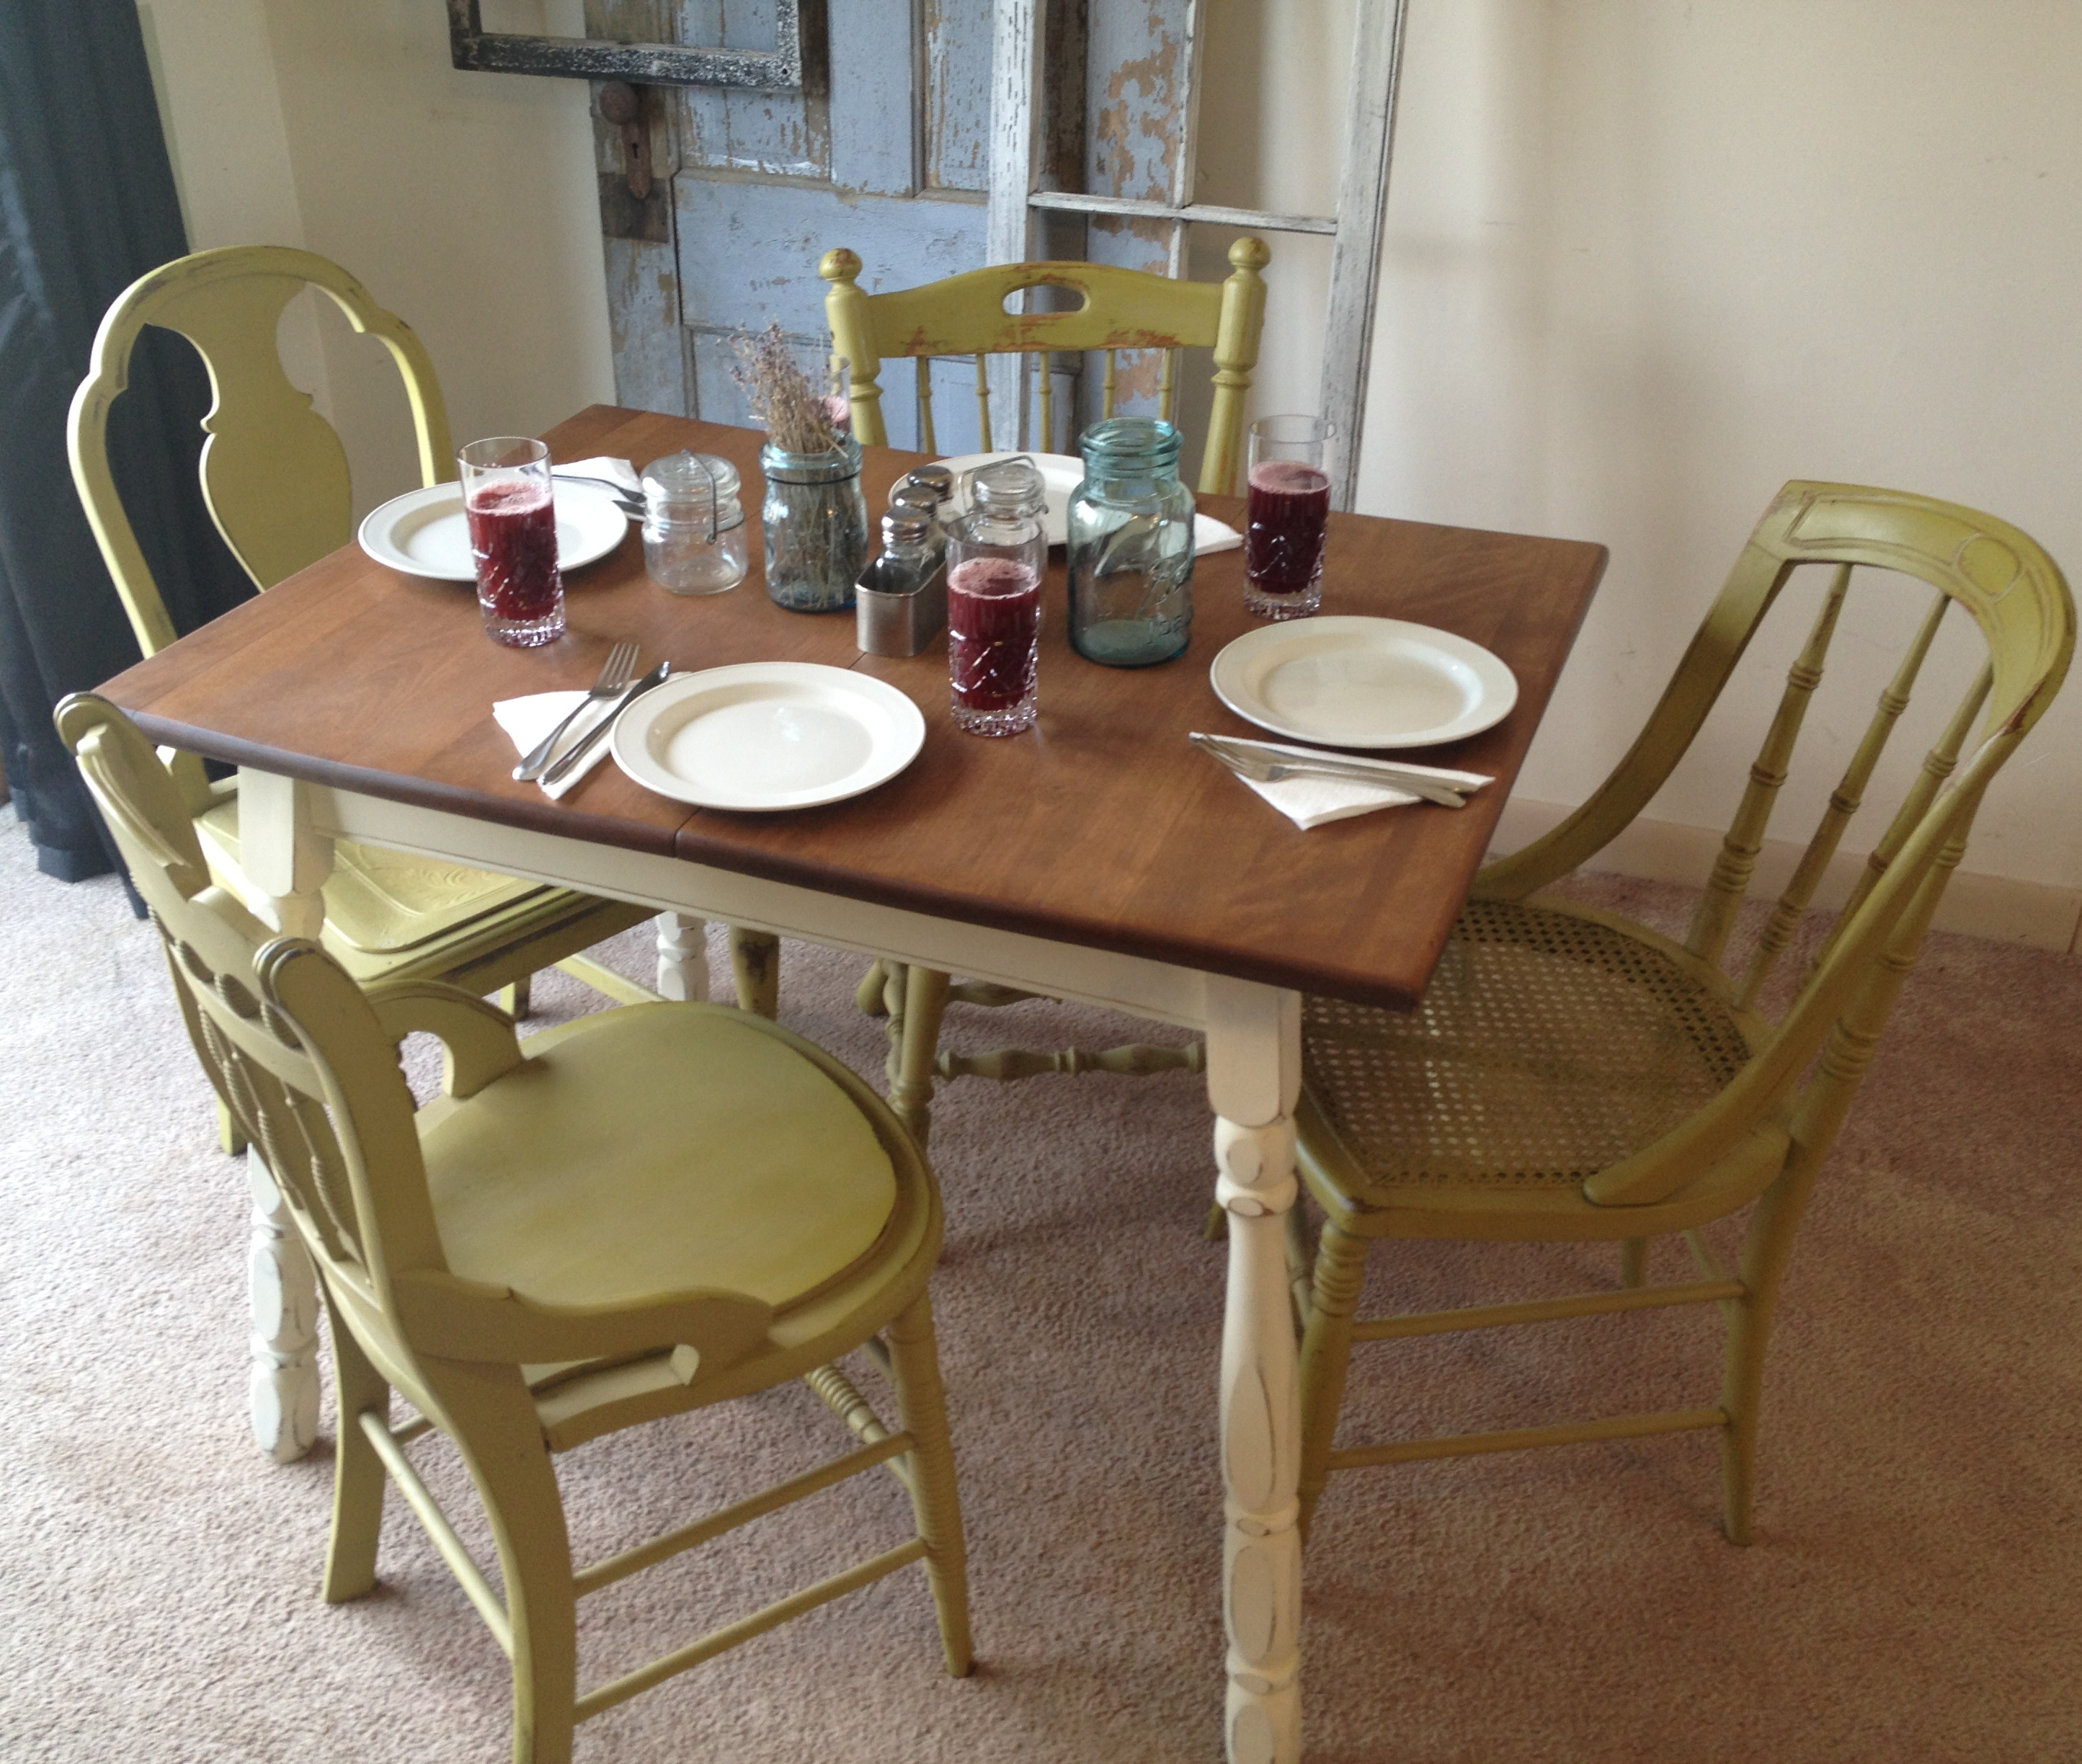 old kitchen table and chairs photo - 3